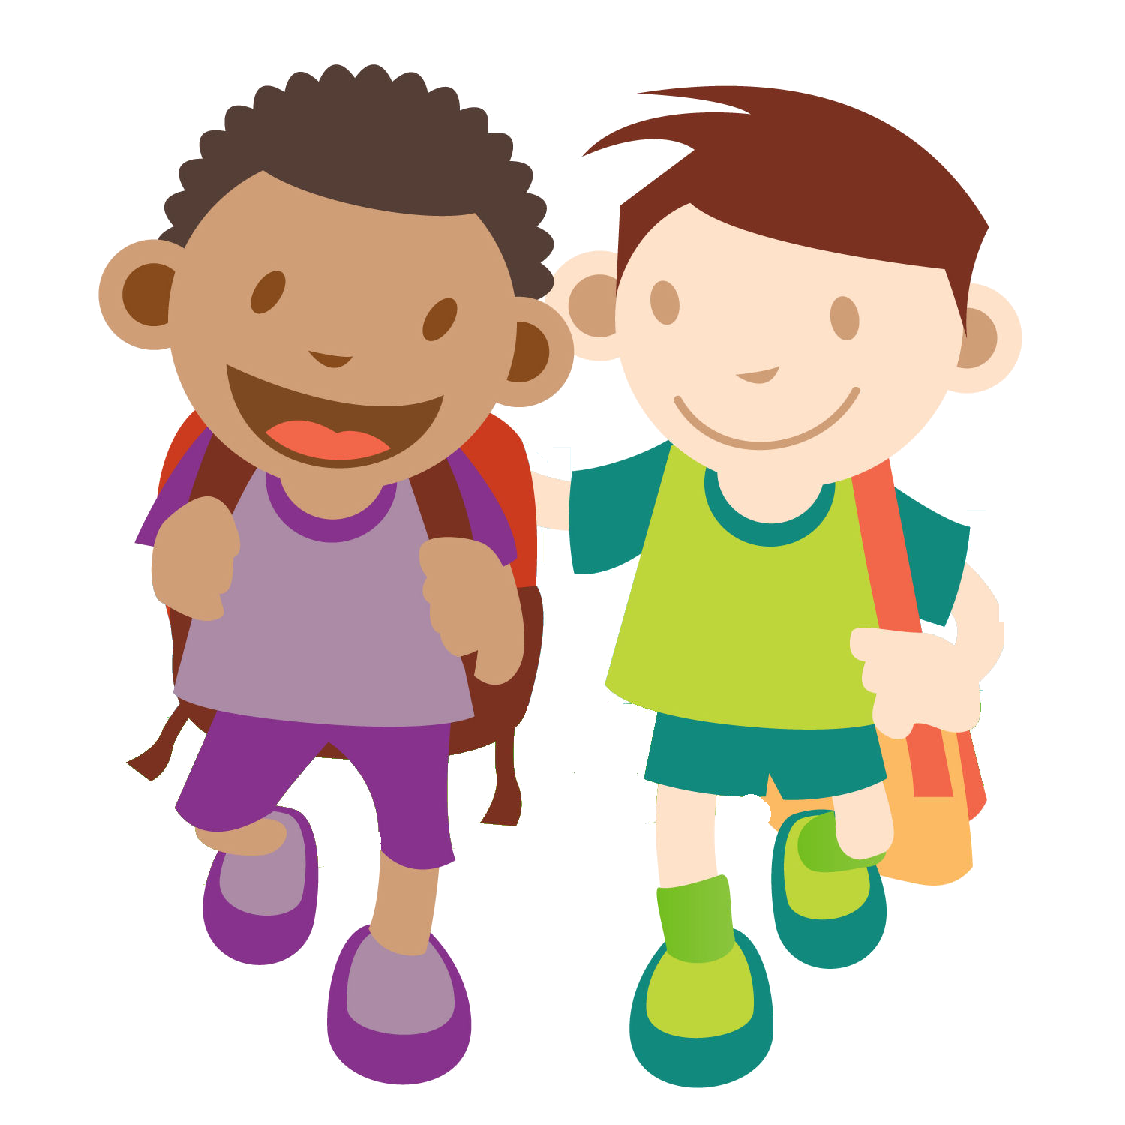 Hiking clipart lost child  Walking Cliparts Cartoon Clip